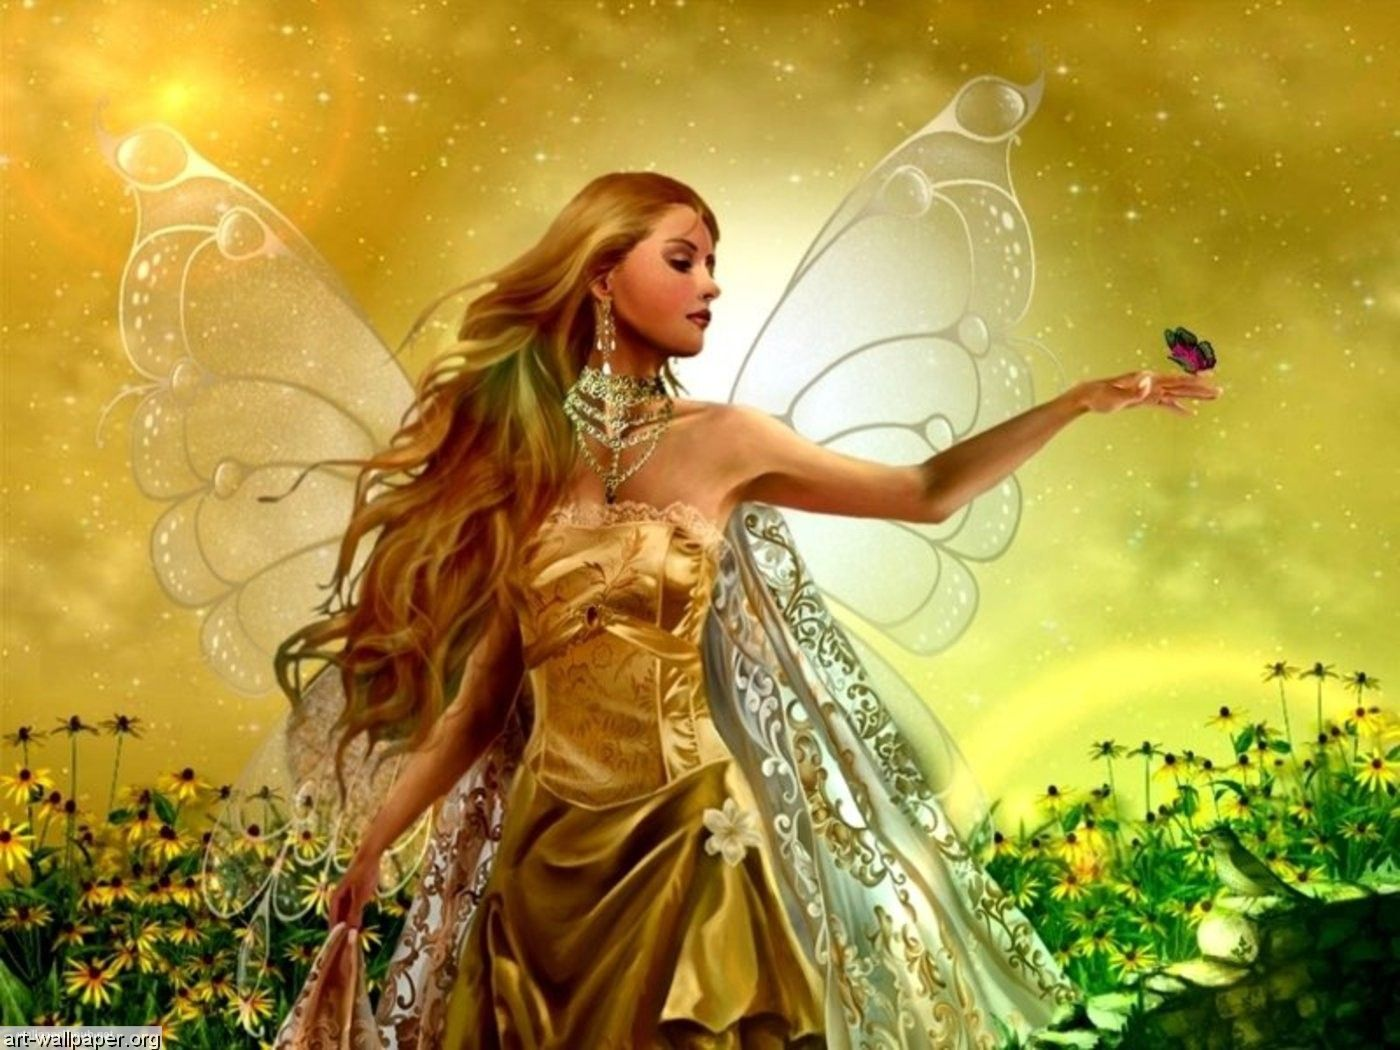 Image Detail For Fairy Art Fairy Wallpapers Art Prints Pictures Fairy Wallpaper Fantasy Fairy Fairy Artwork